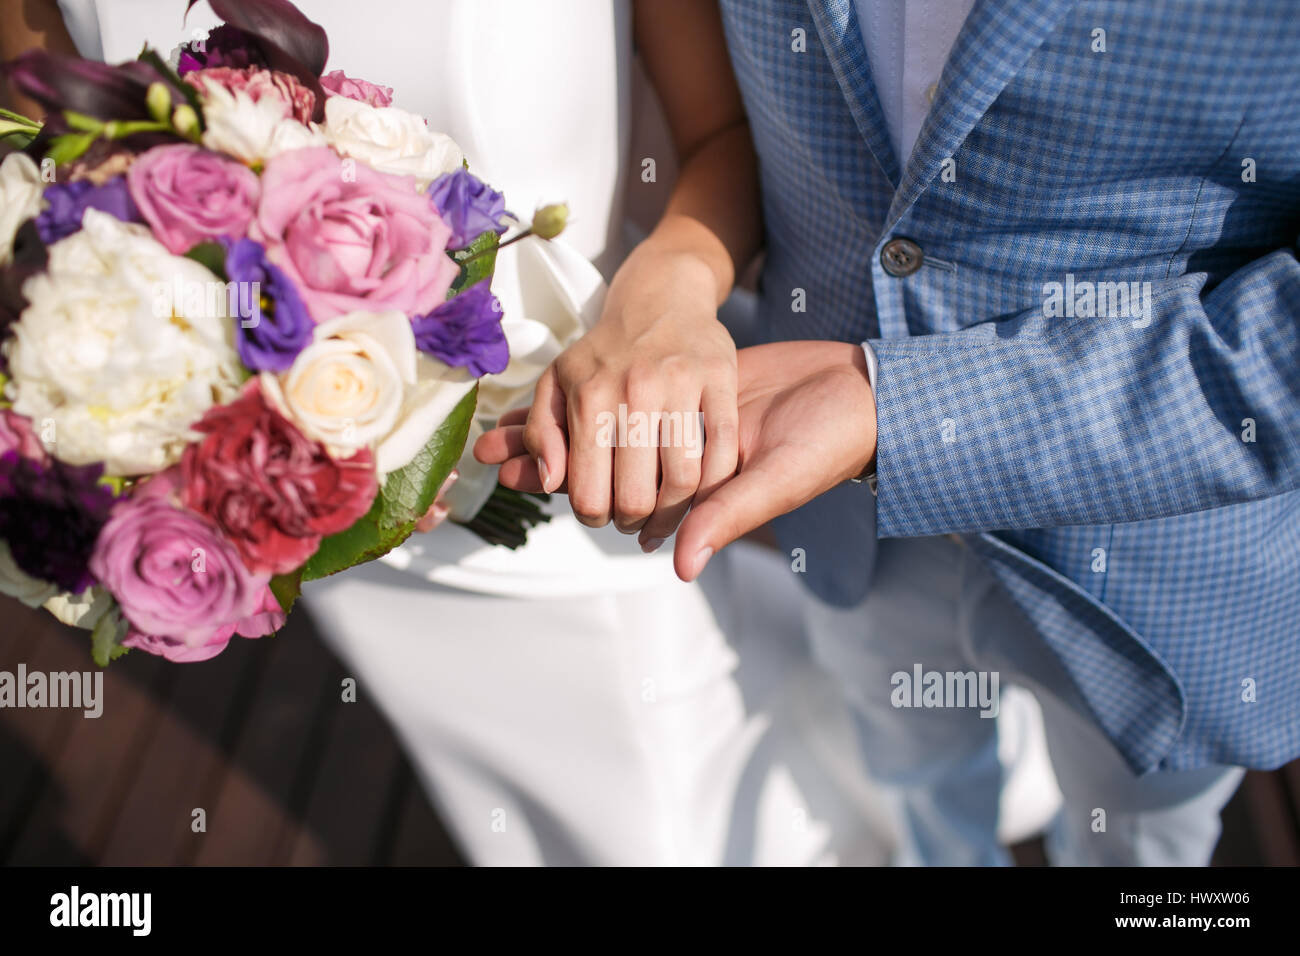 The man the groom keeps the girl's hand. Colorful bridal bouquet. wedding day, bride accessories - Stock Image